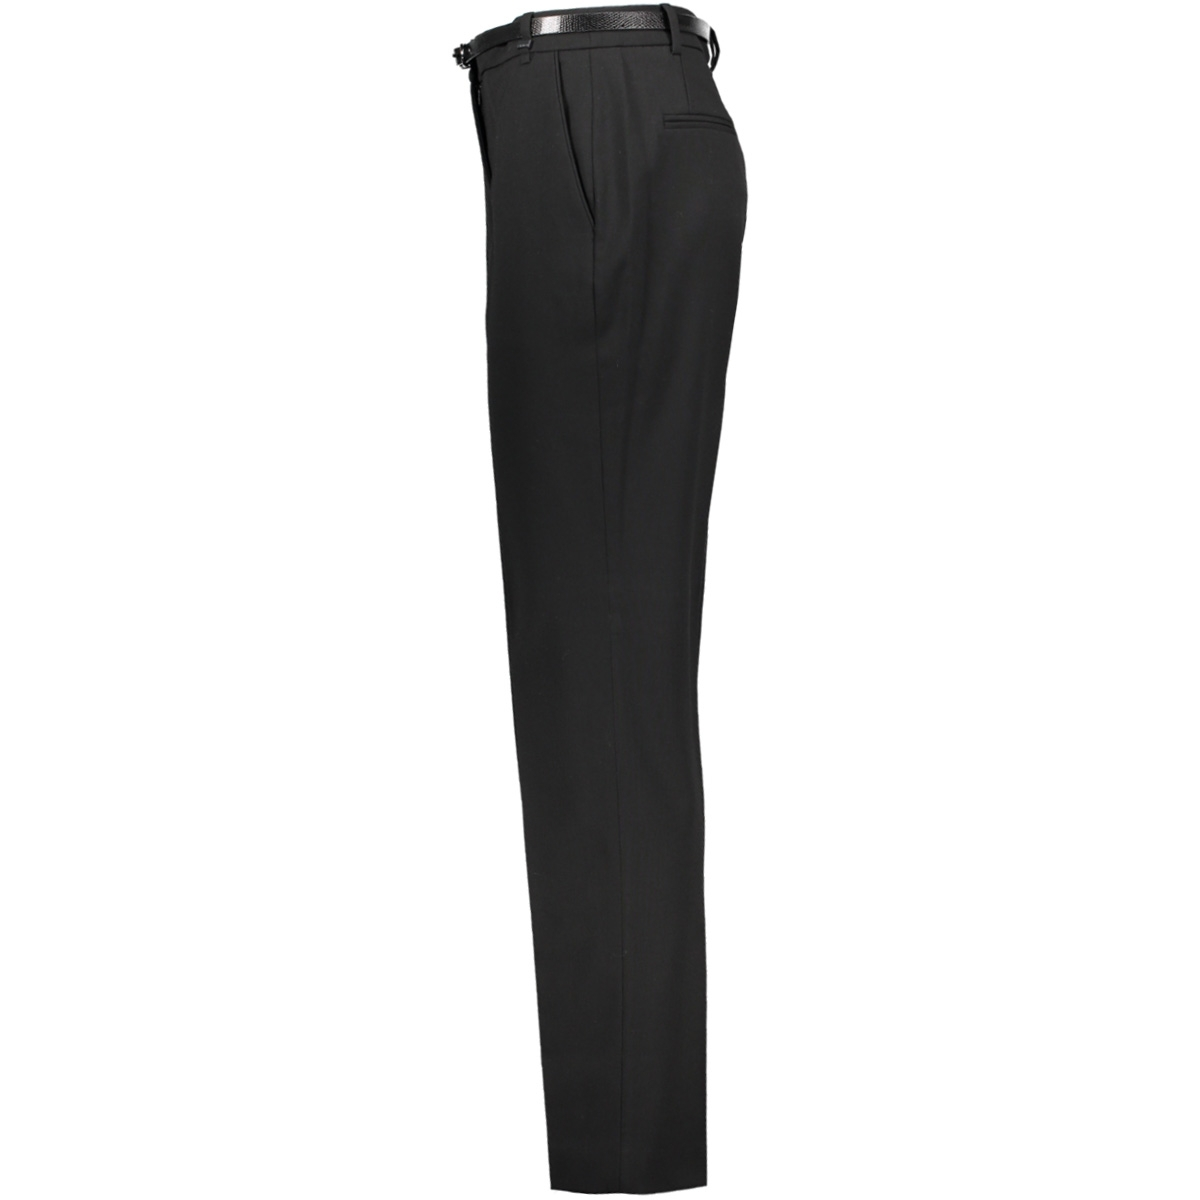 997eo1b802 esprit collection broek e001